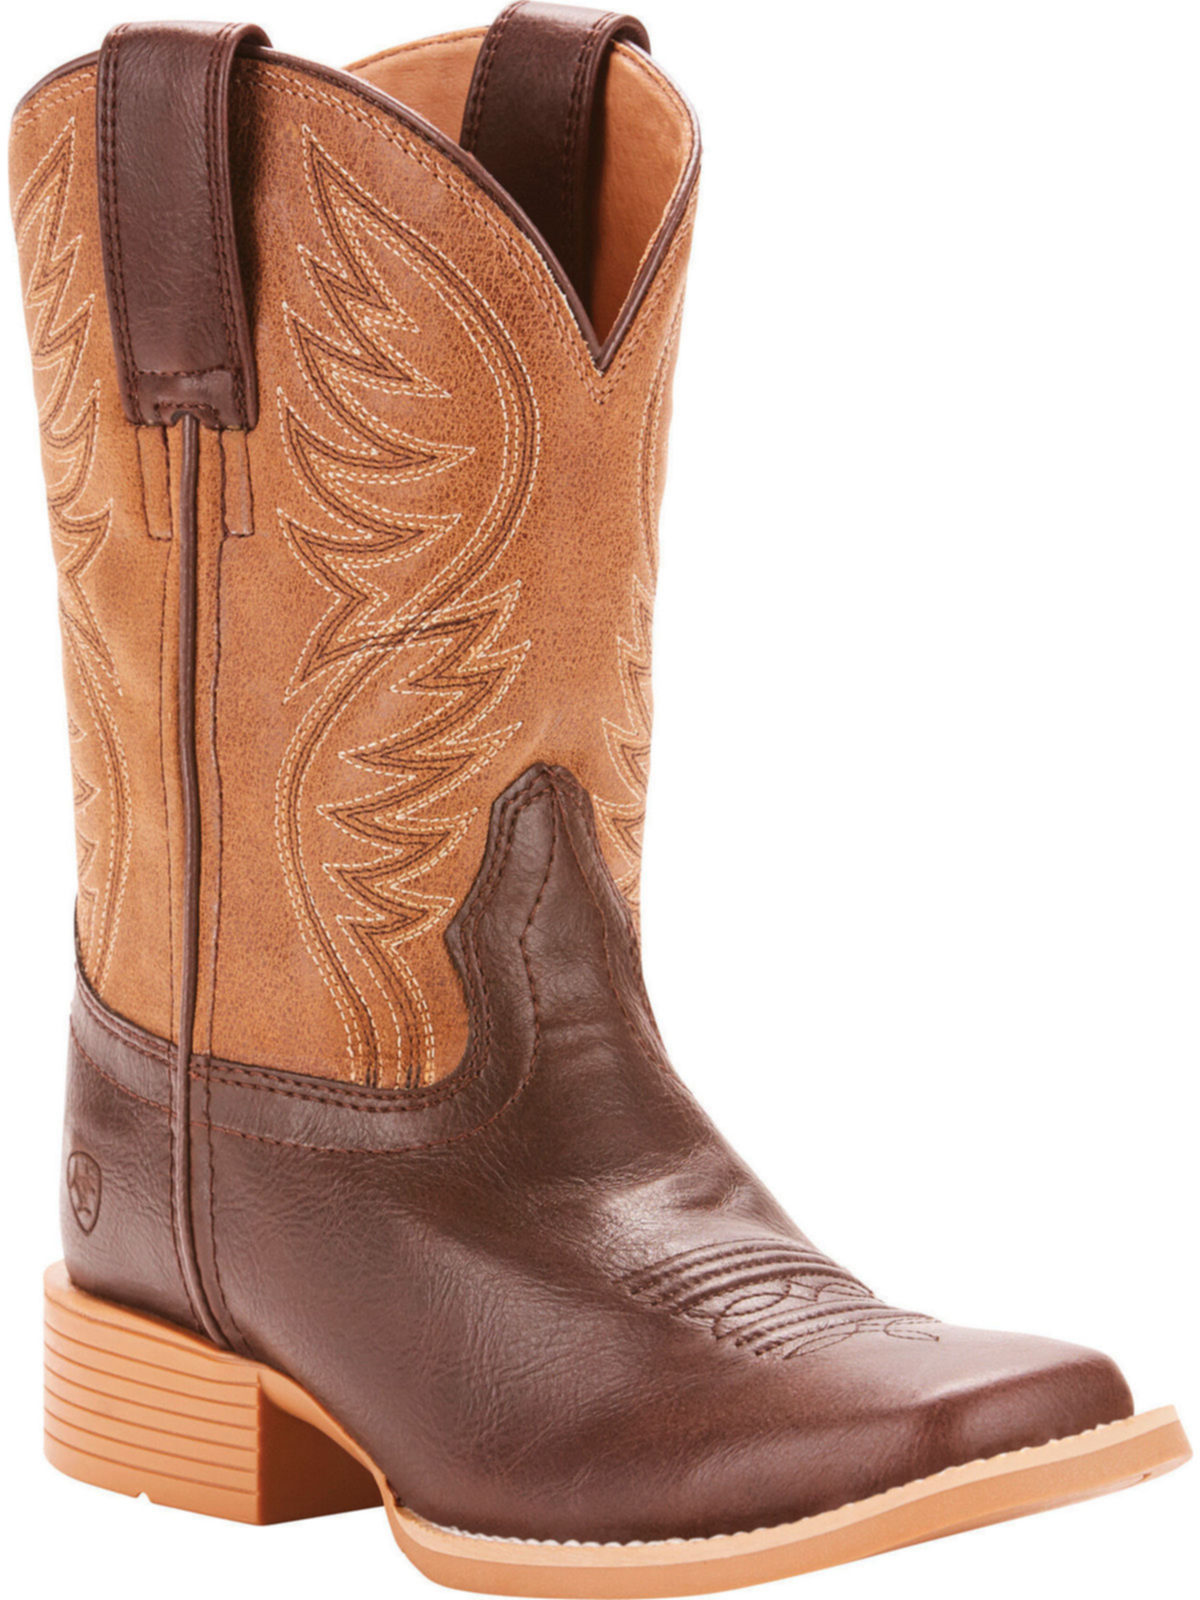 1d7852a3f17 Ariat Youth Western Cowpoke Brumby Fudgesicle Cowboy Boot 10025169